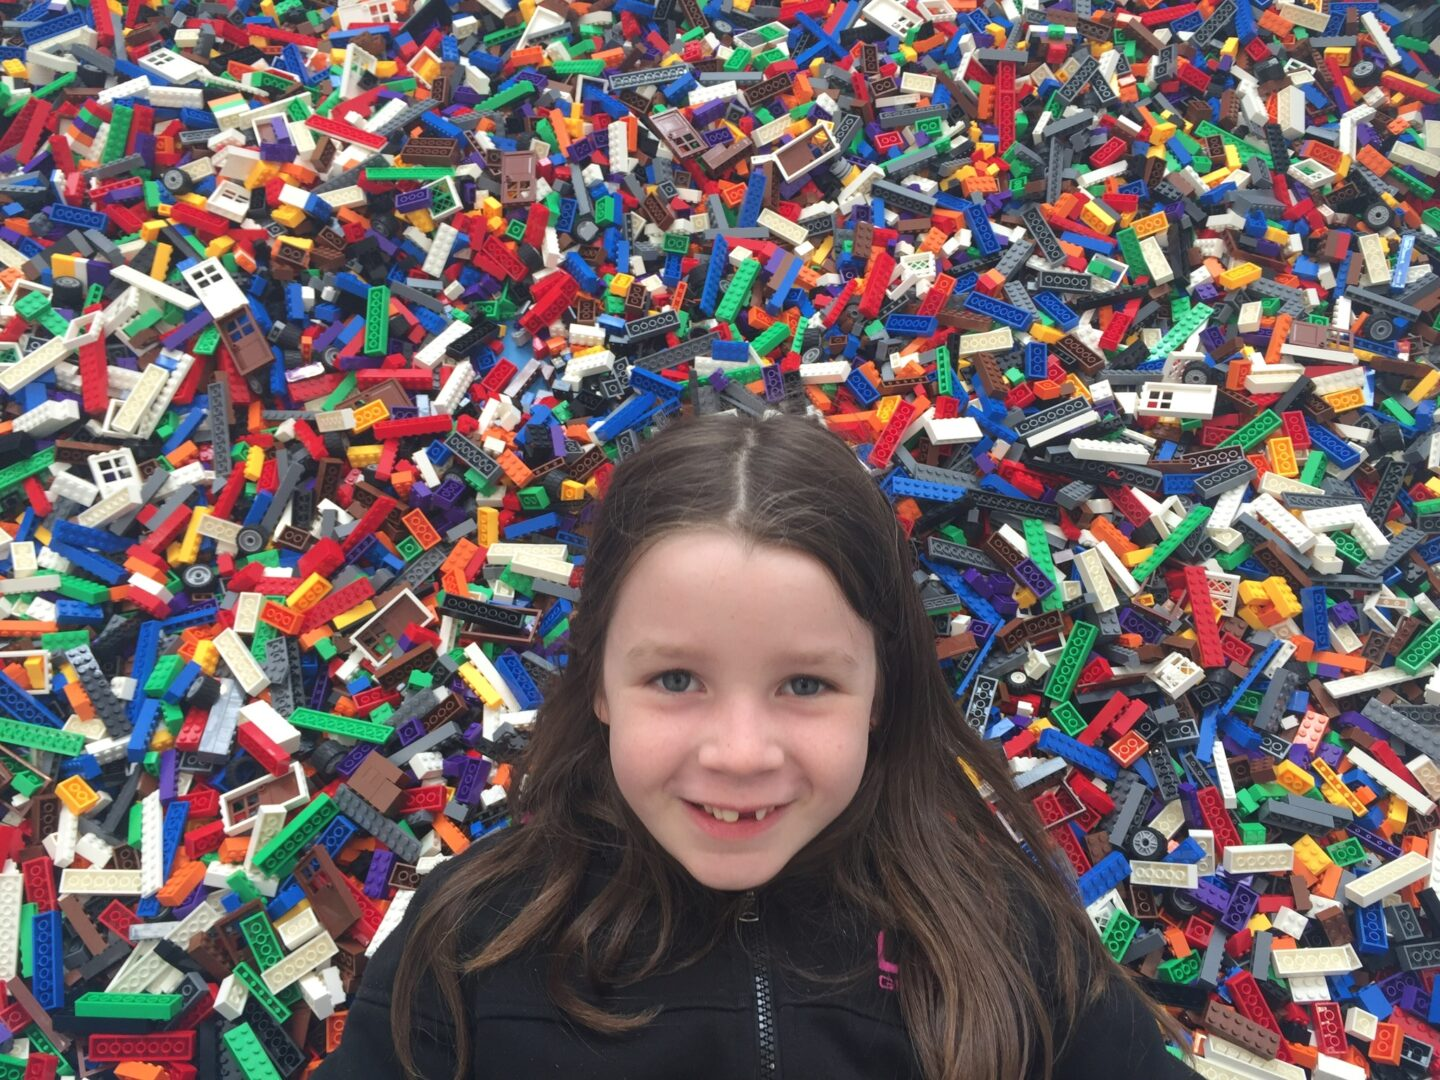 I Hate Lego: A Complicated Relationship